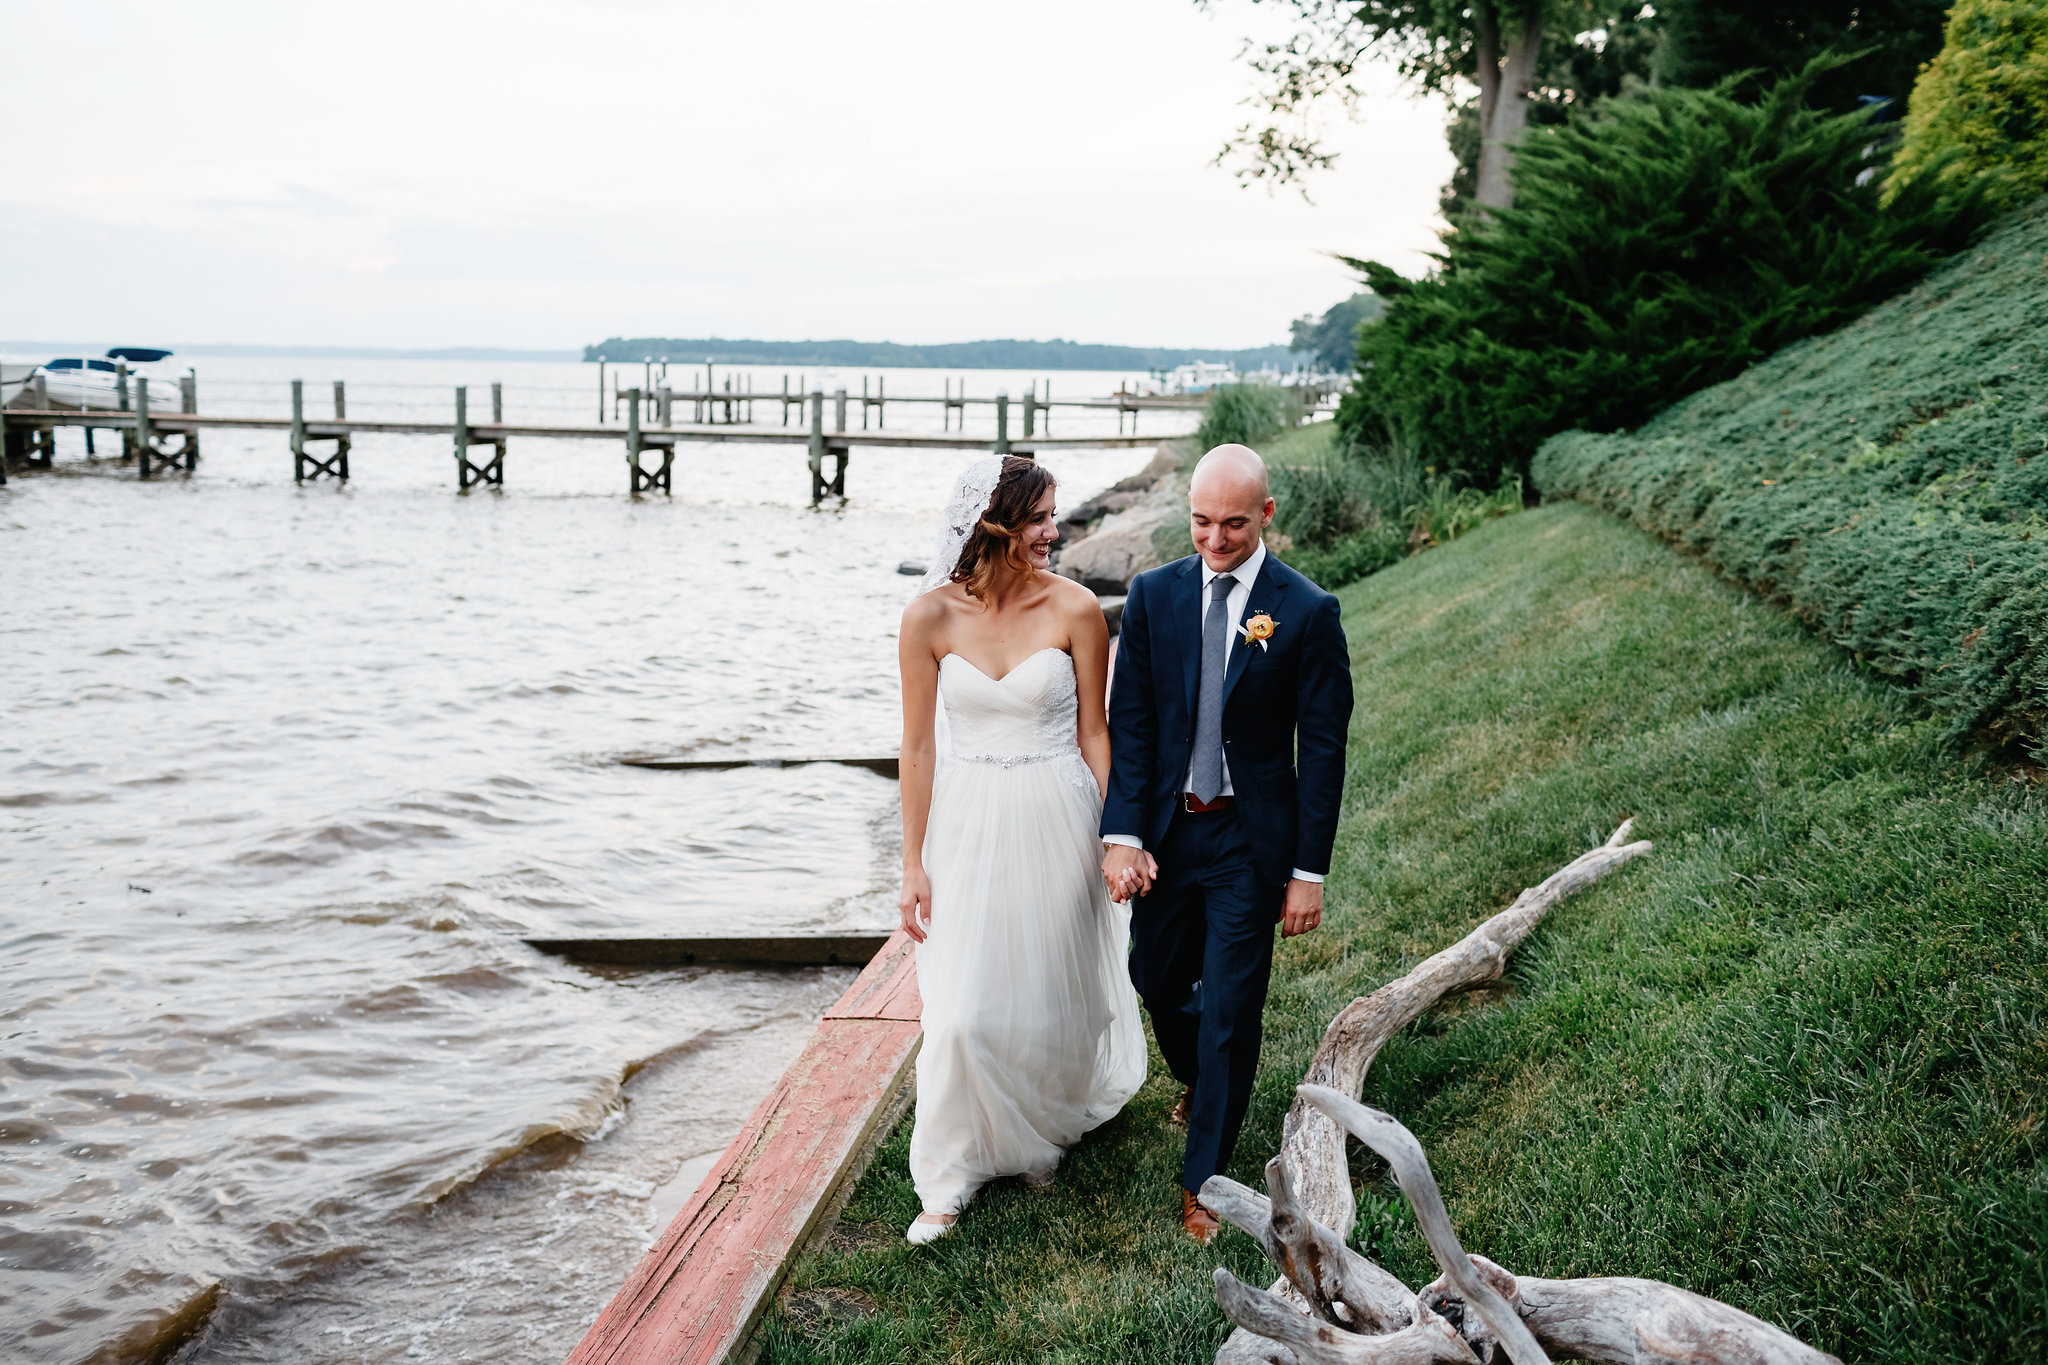 Maria&Dave2017-07-28at9.37.00AM3.jpg